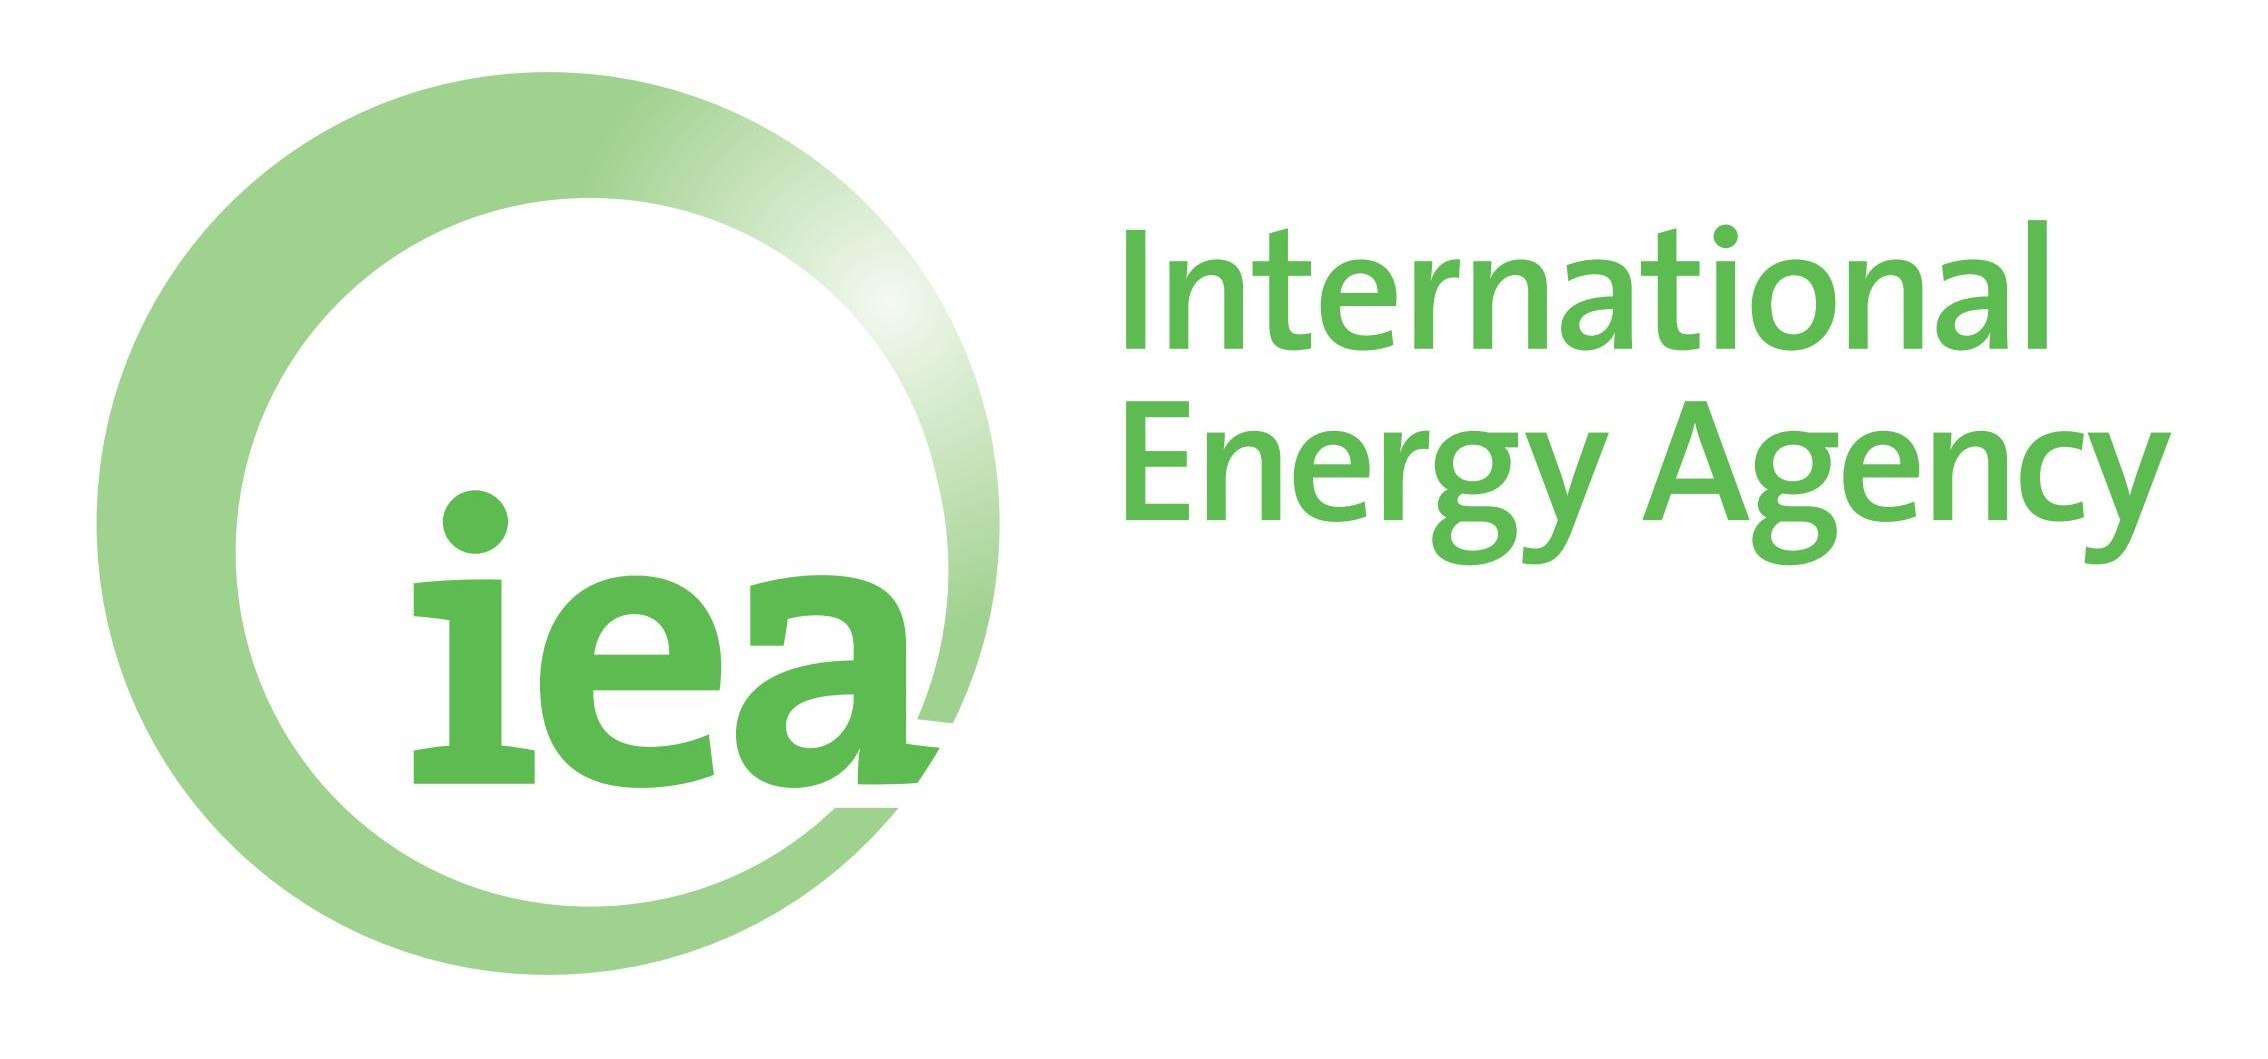 iea international energy agency logo